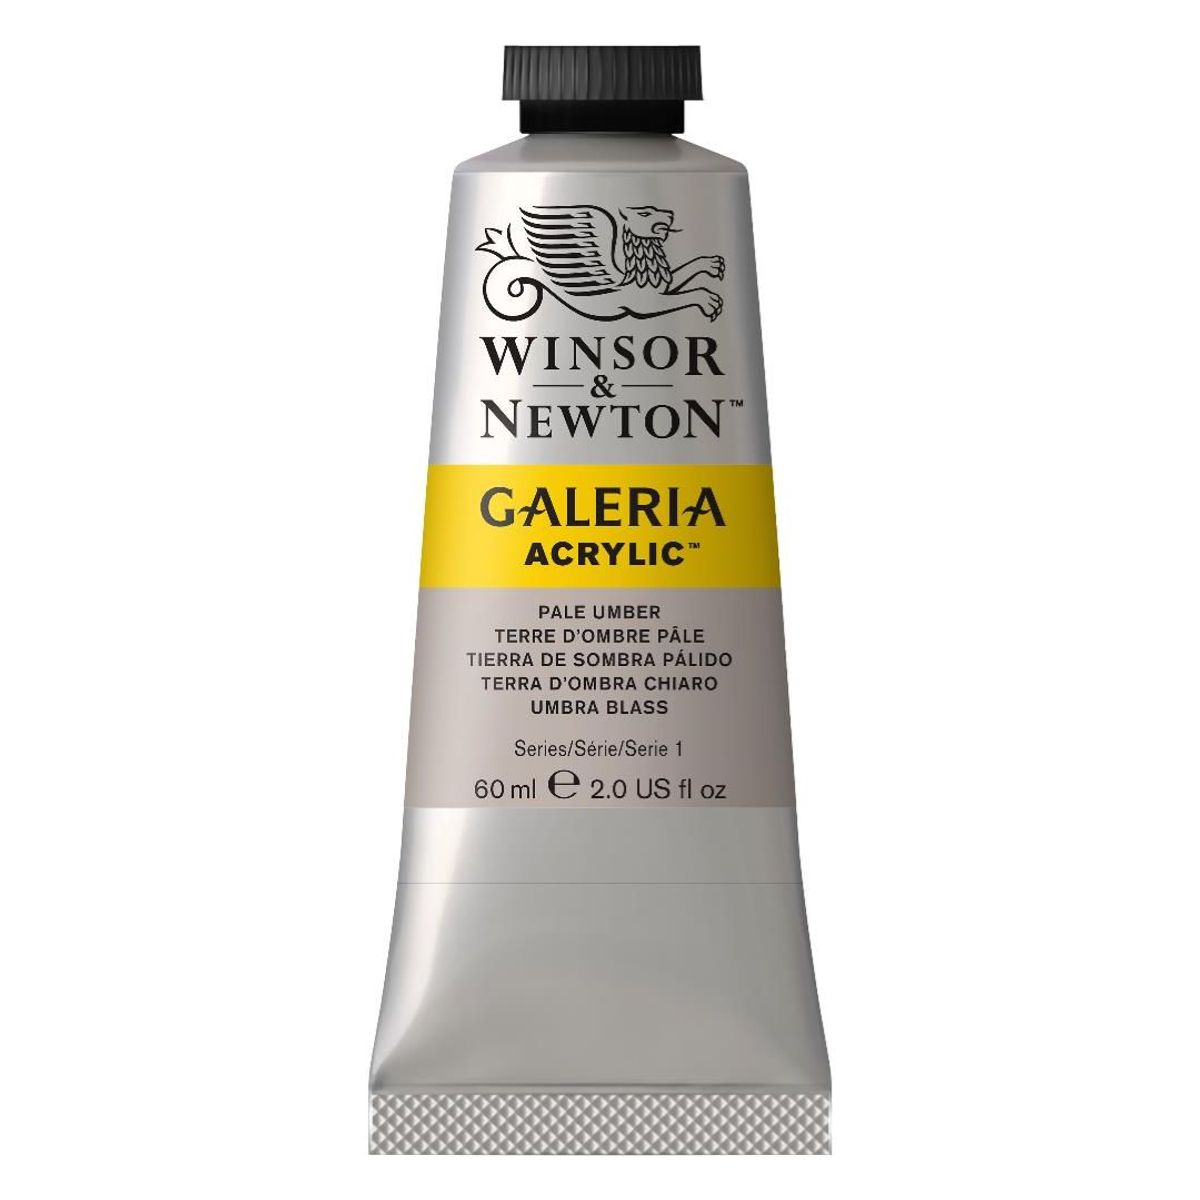 WINSOR AND NEWTON GALERIA ACRYLIC COLOUR - TUBE OF 60 ML - PALE UMBER (438)